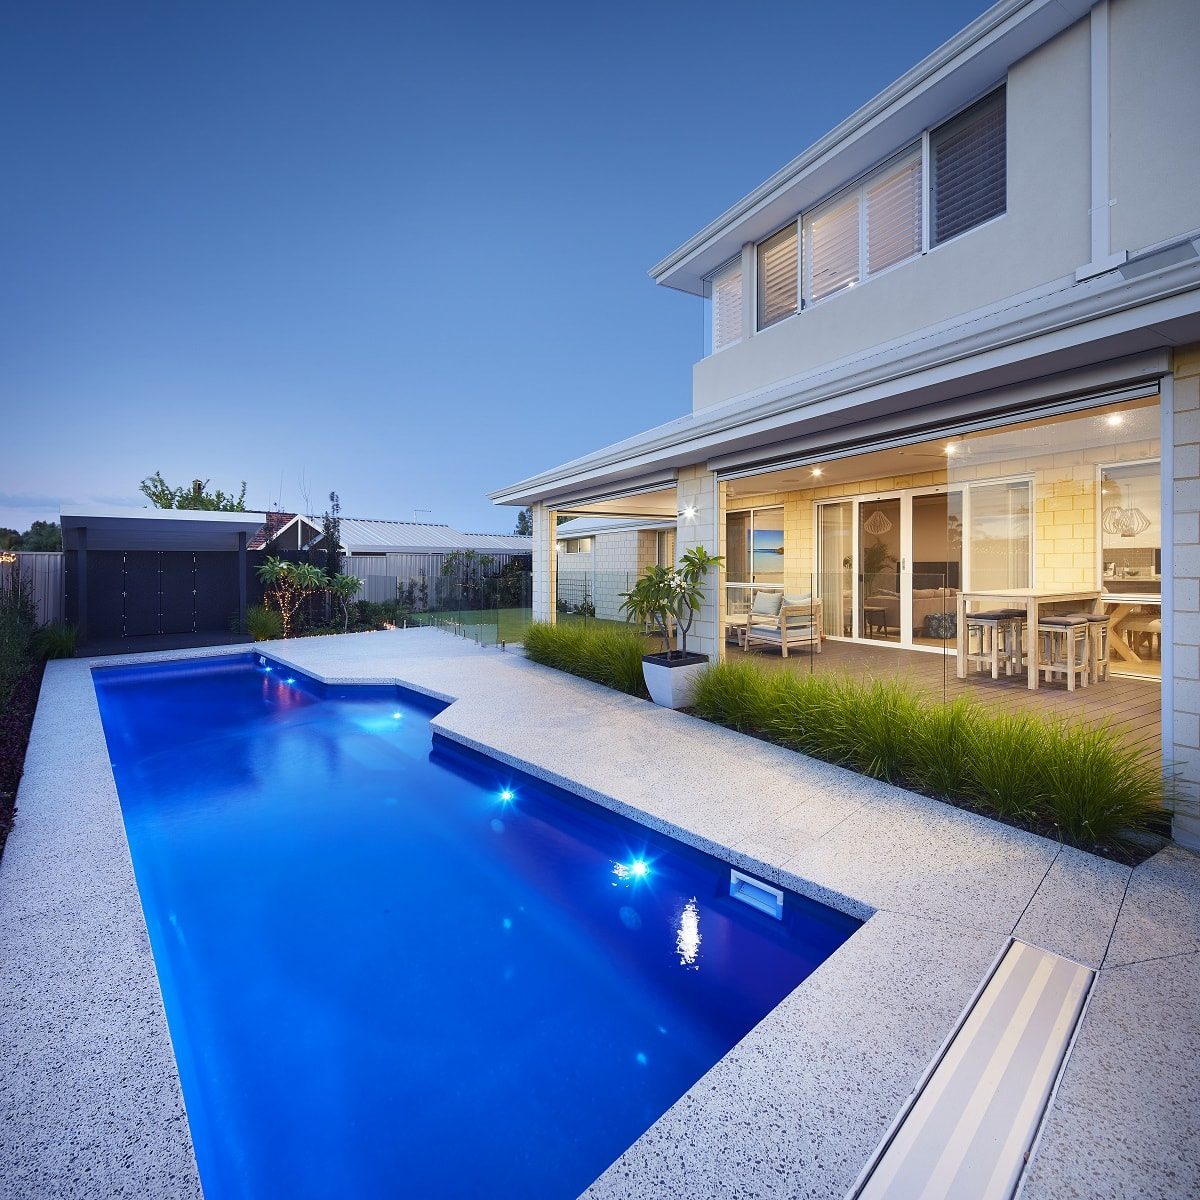 12mlap-pool-royal-blue-shimmer-willetton-4